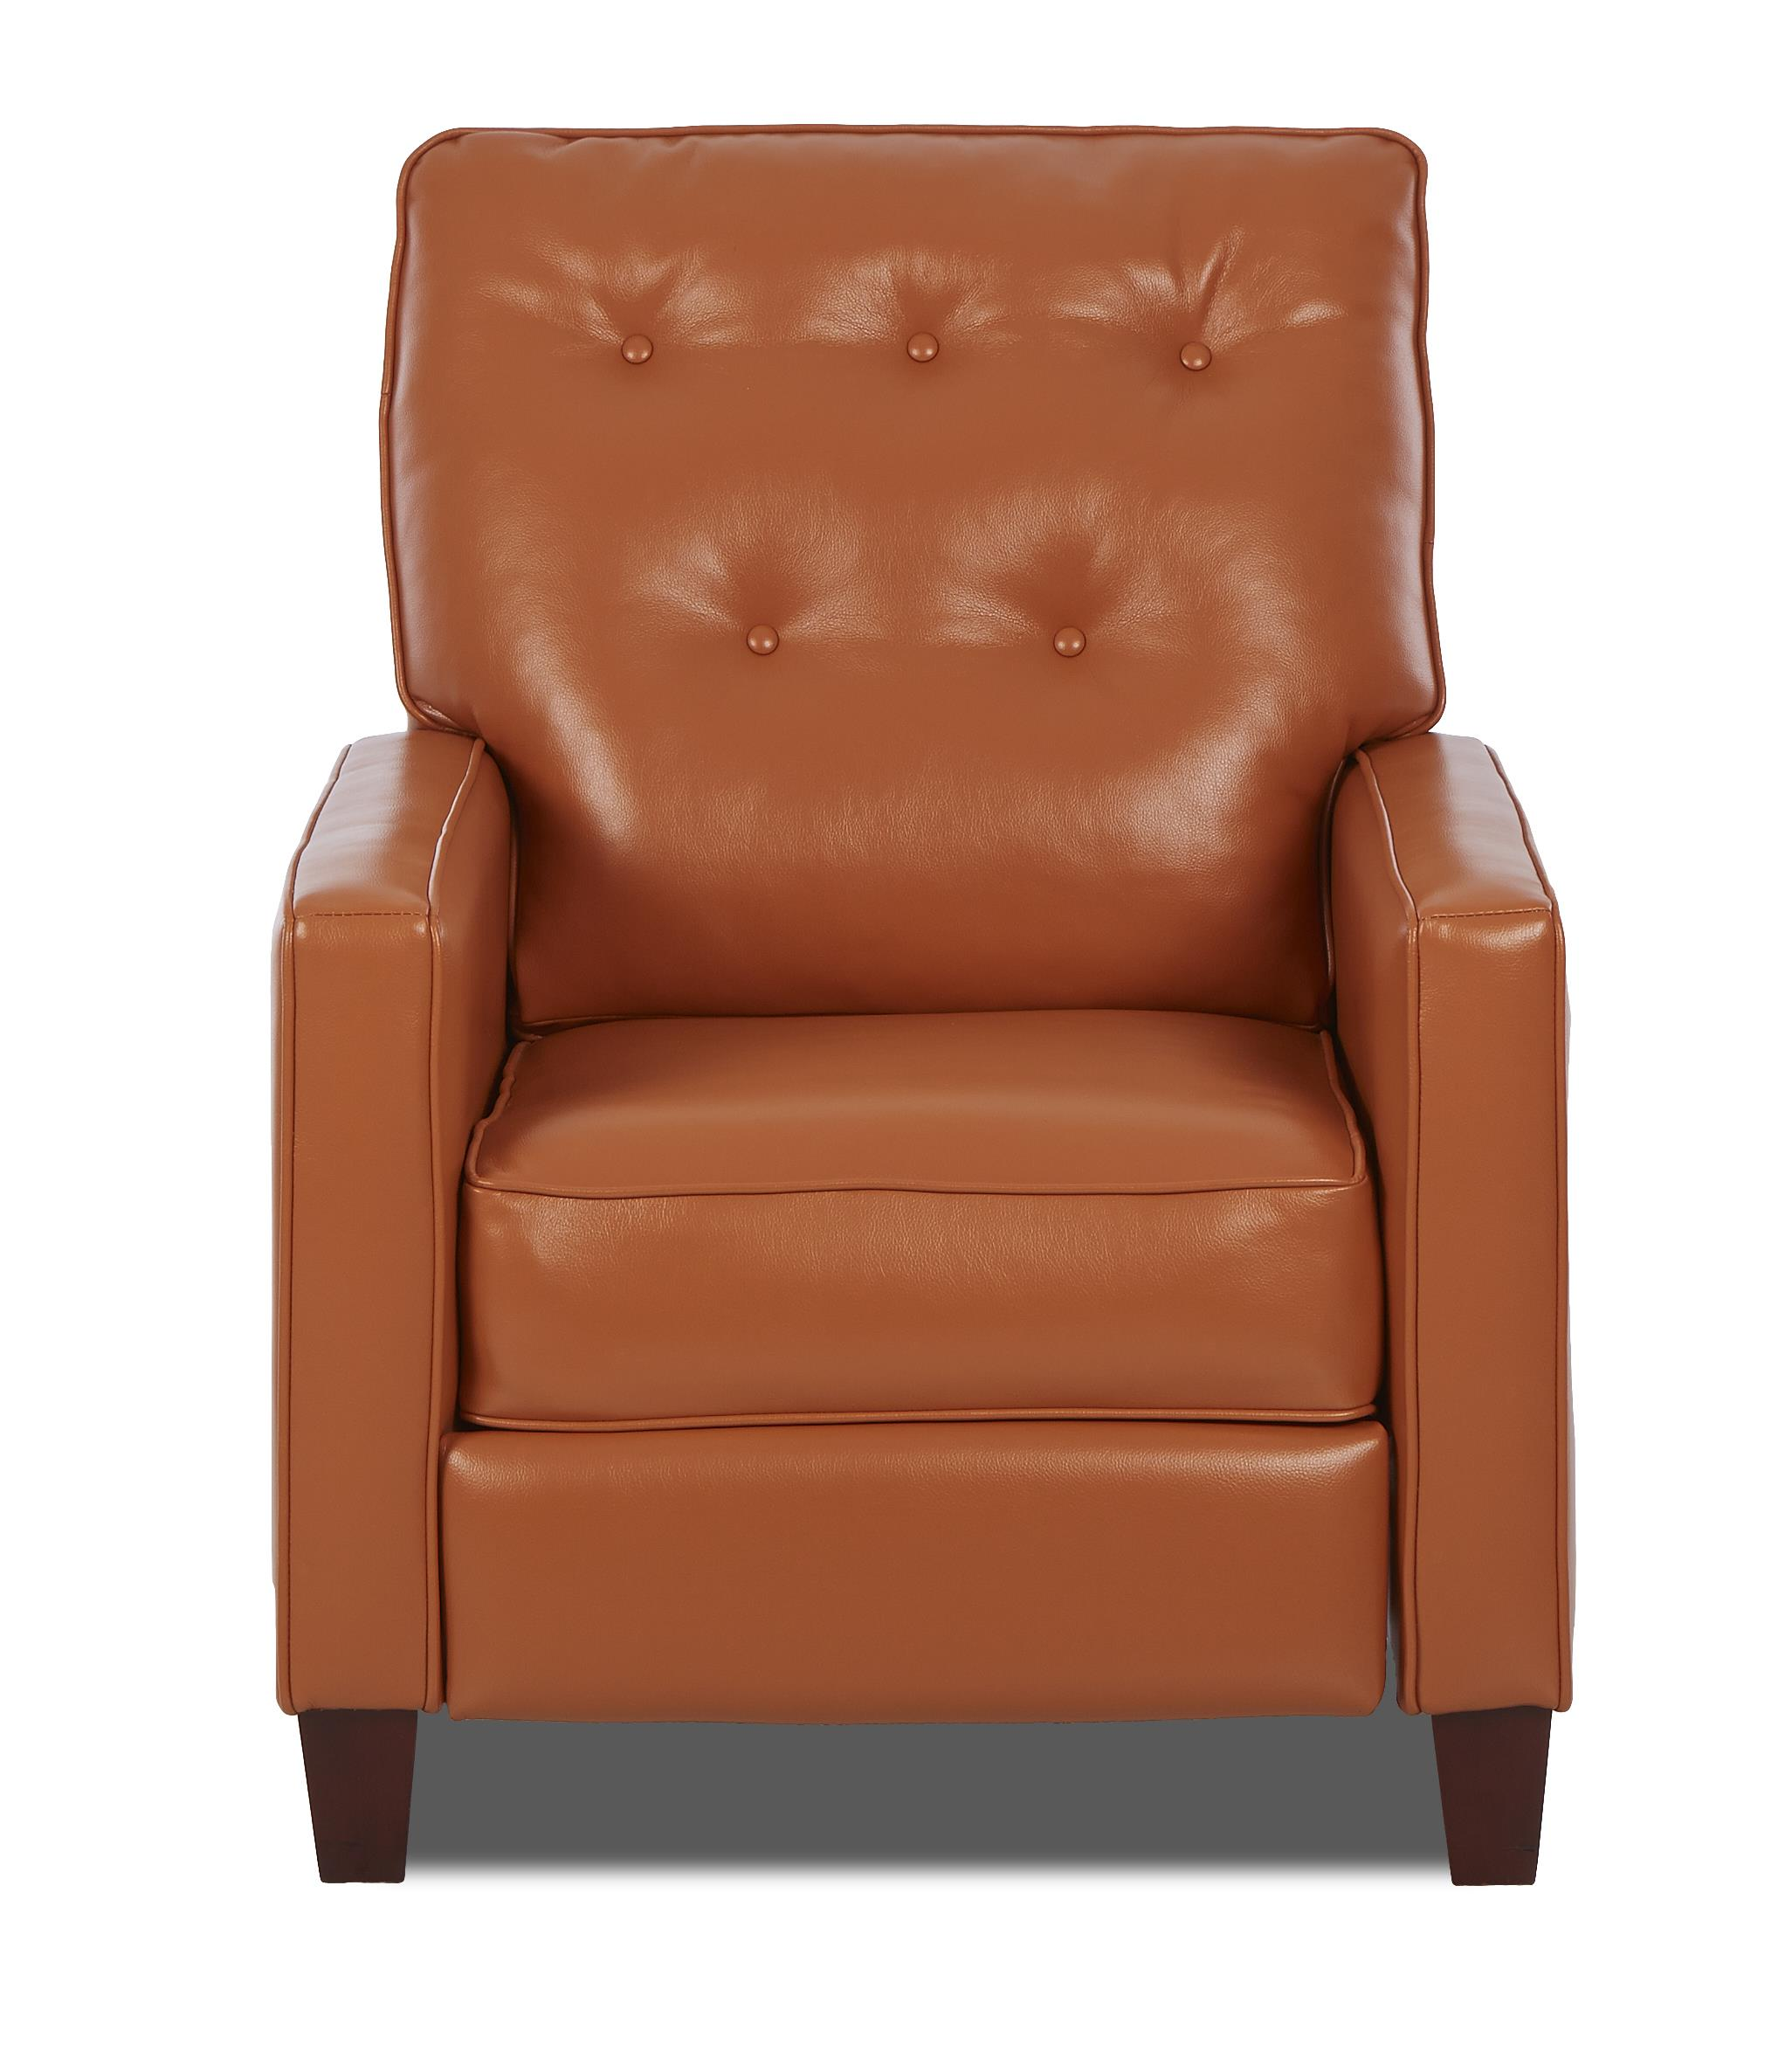 High leg reclining chairs - Traditional High Leg Reclining Chair With Tufted Seat Back